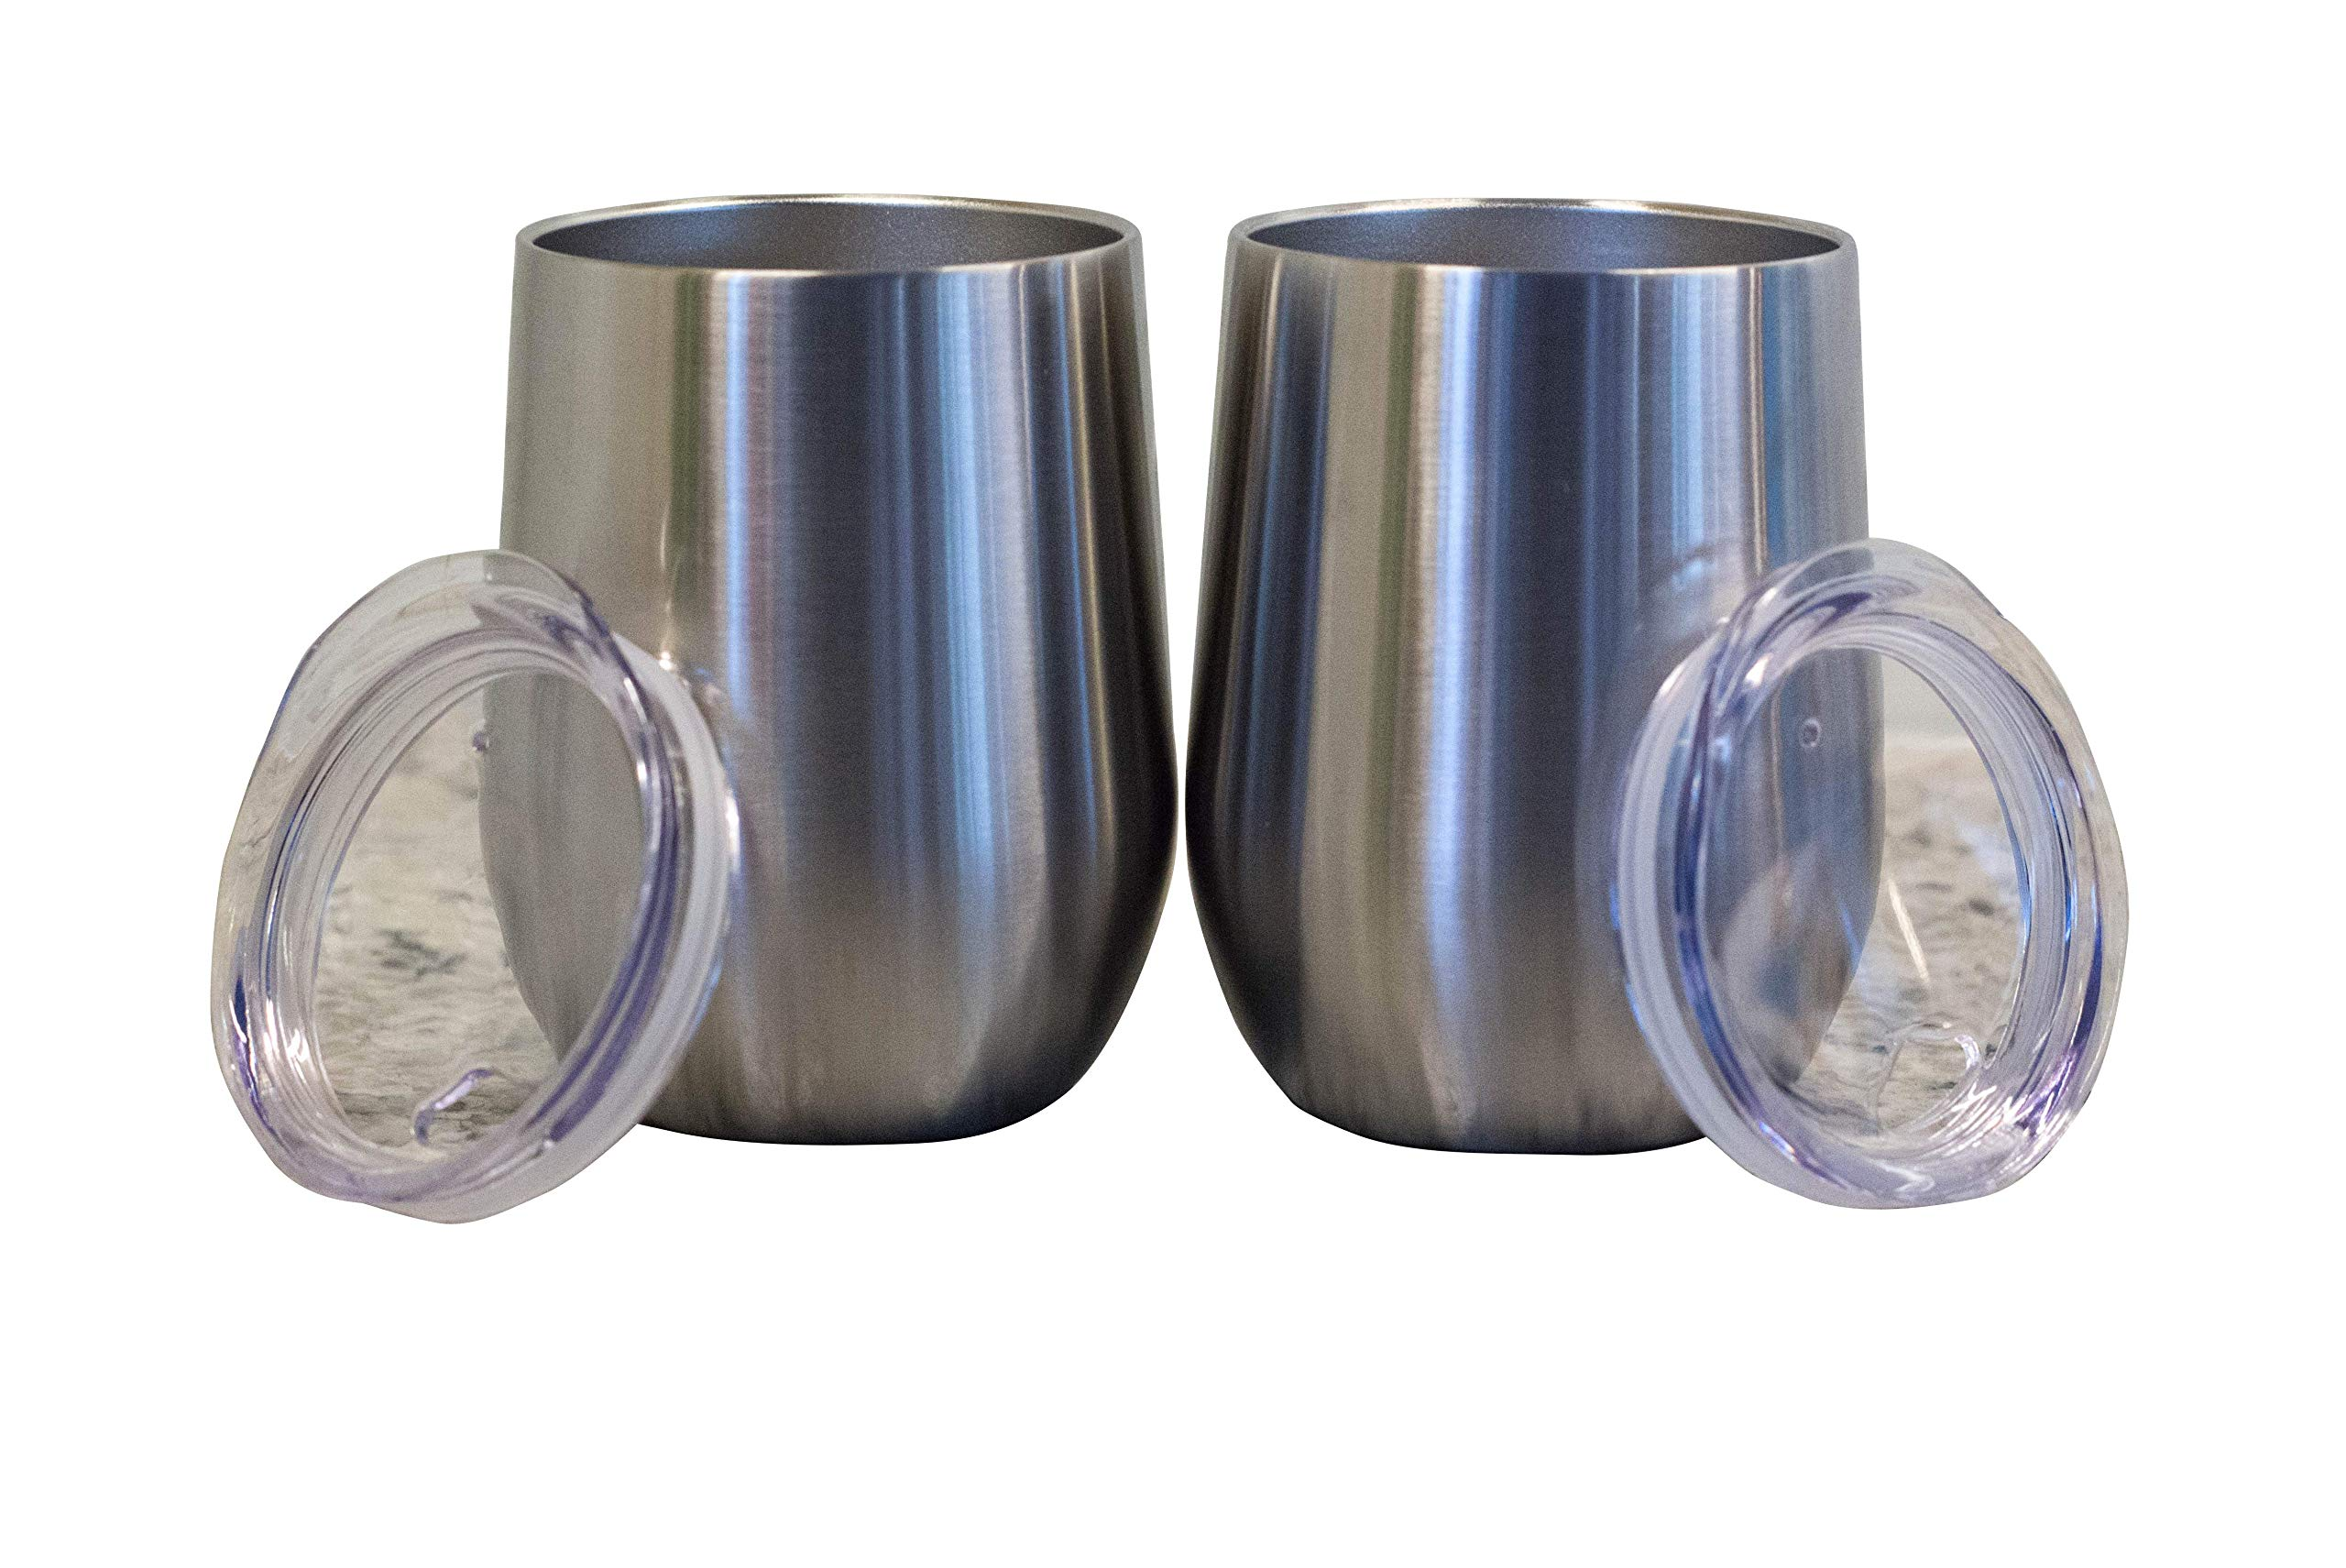 Coastline Vine Wine Glass Tumbler Cups with Clear Lids - Stainless Steel Triple Insulated Vacuum - Double Set of 2-12OZ Shatterproof Spill Preventing BPA Free